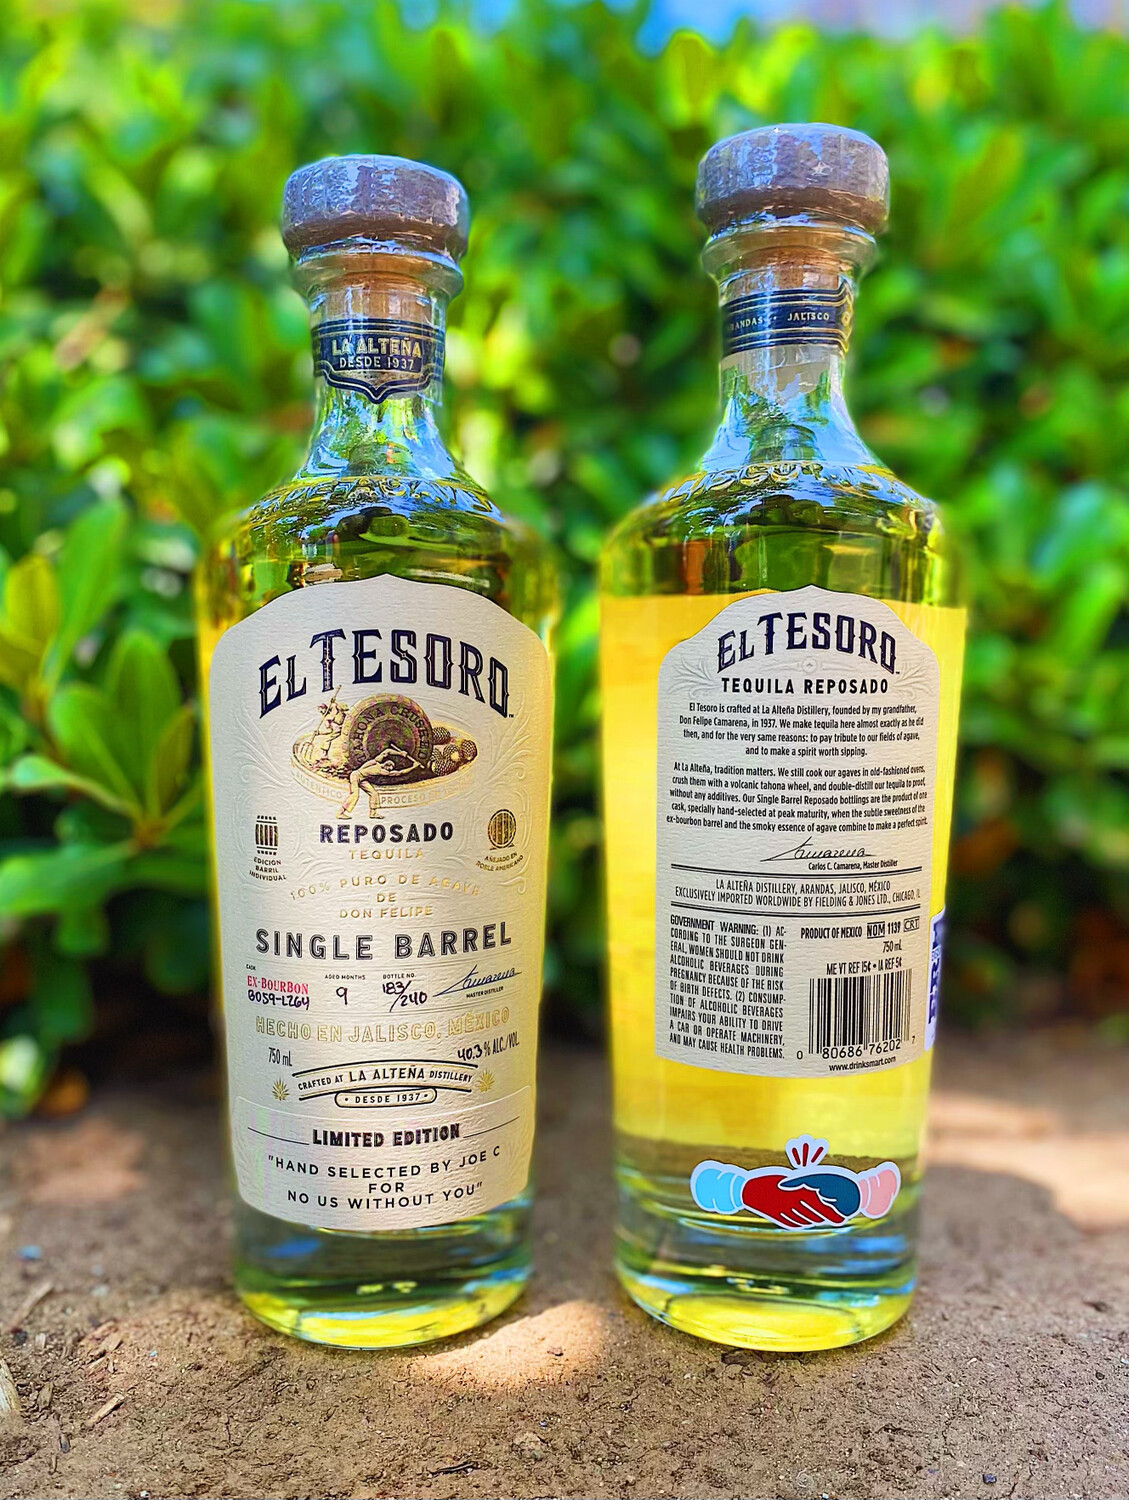 El Tesoro Single Barrel Reposado Tequila Hand Selected by Joe C for No Us Without You